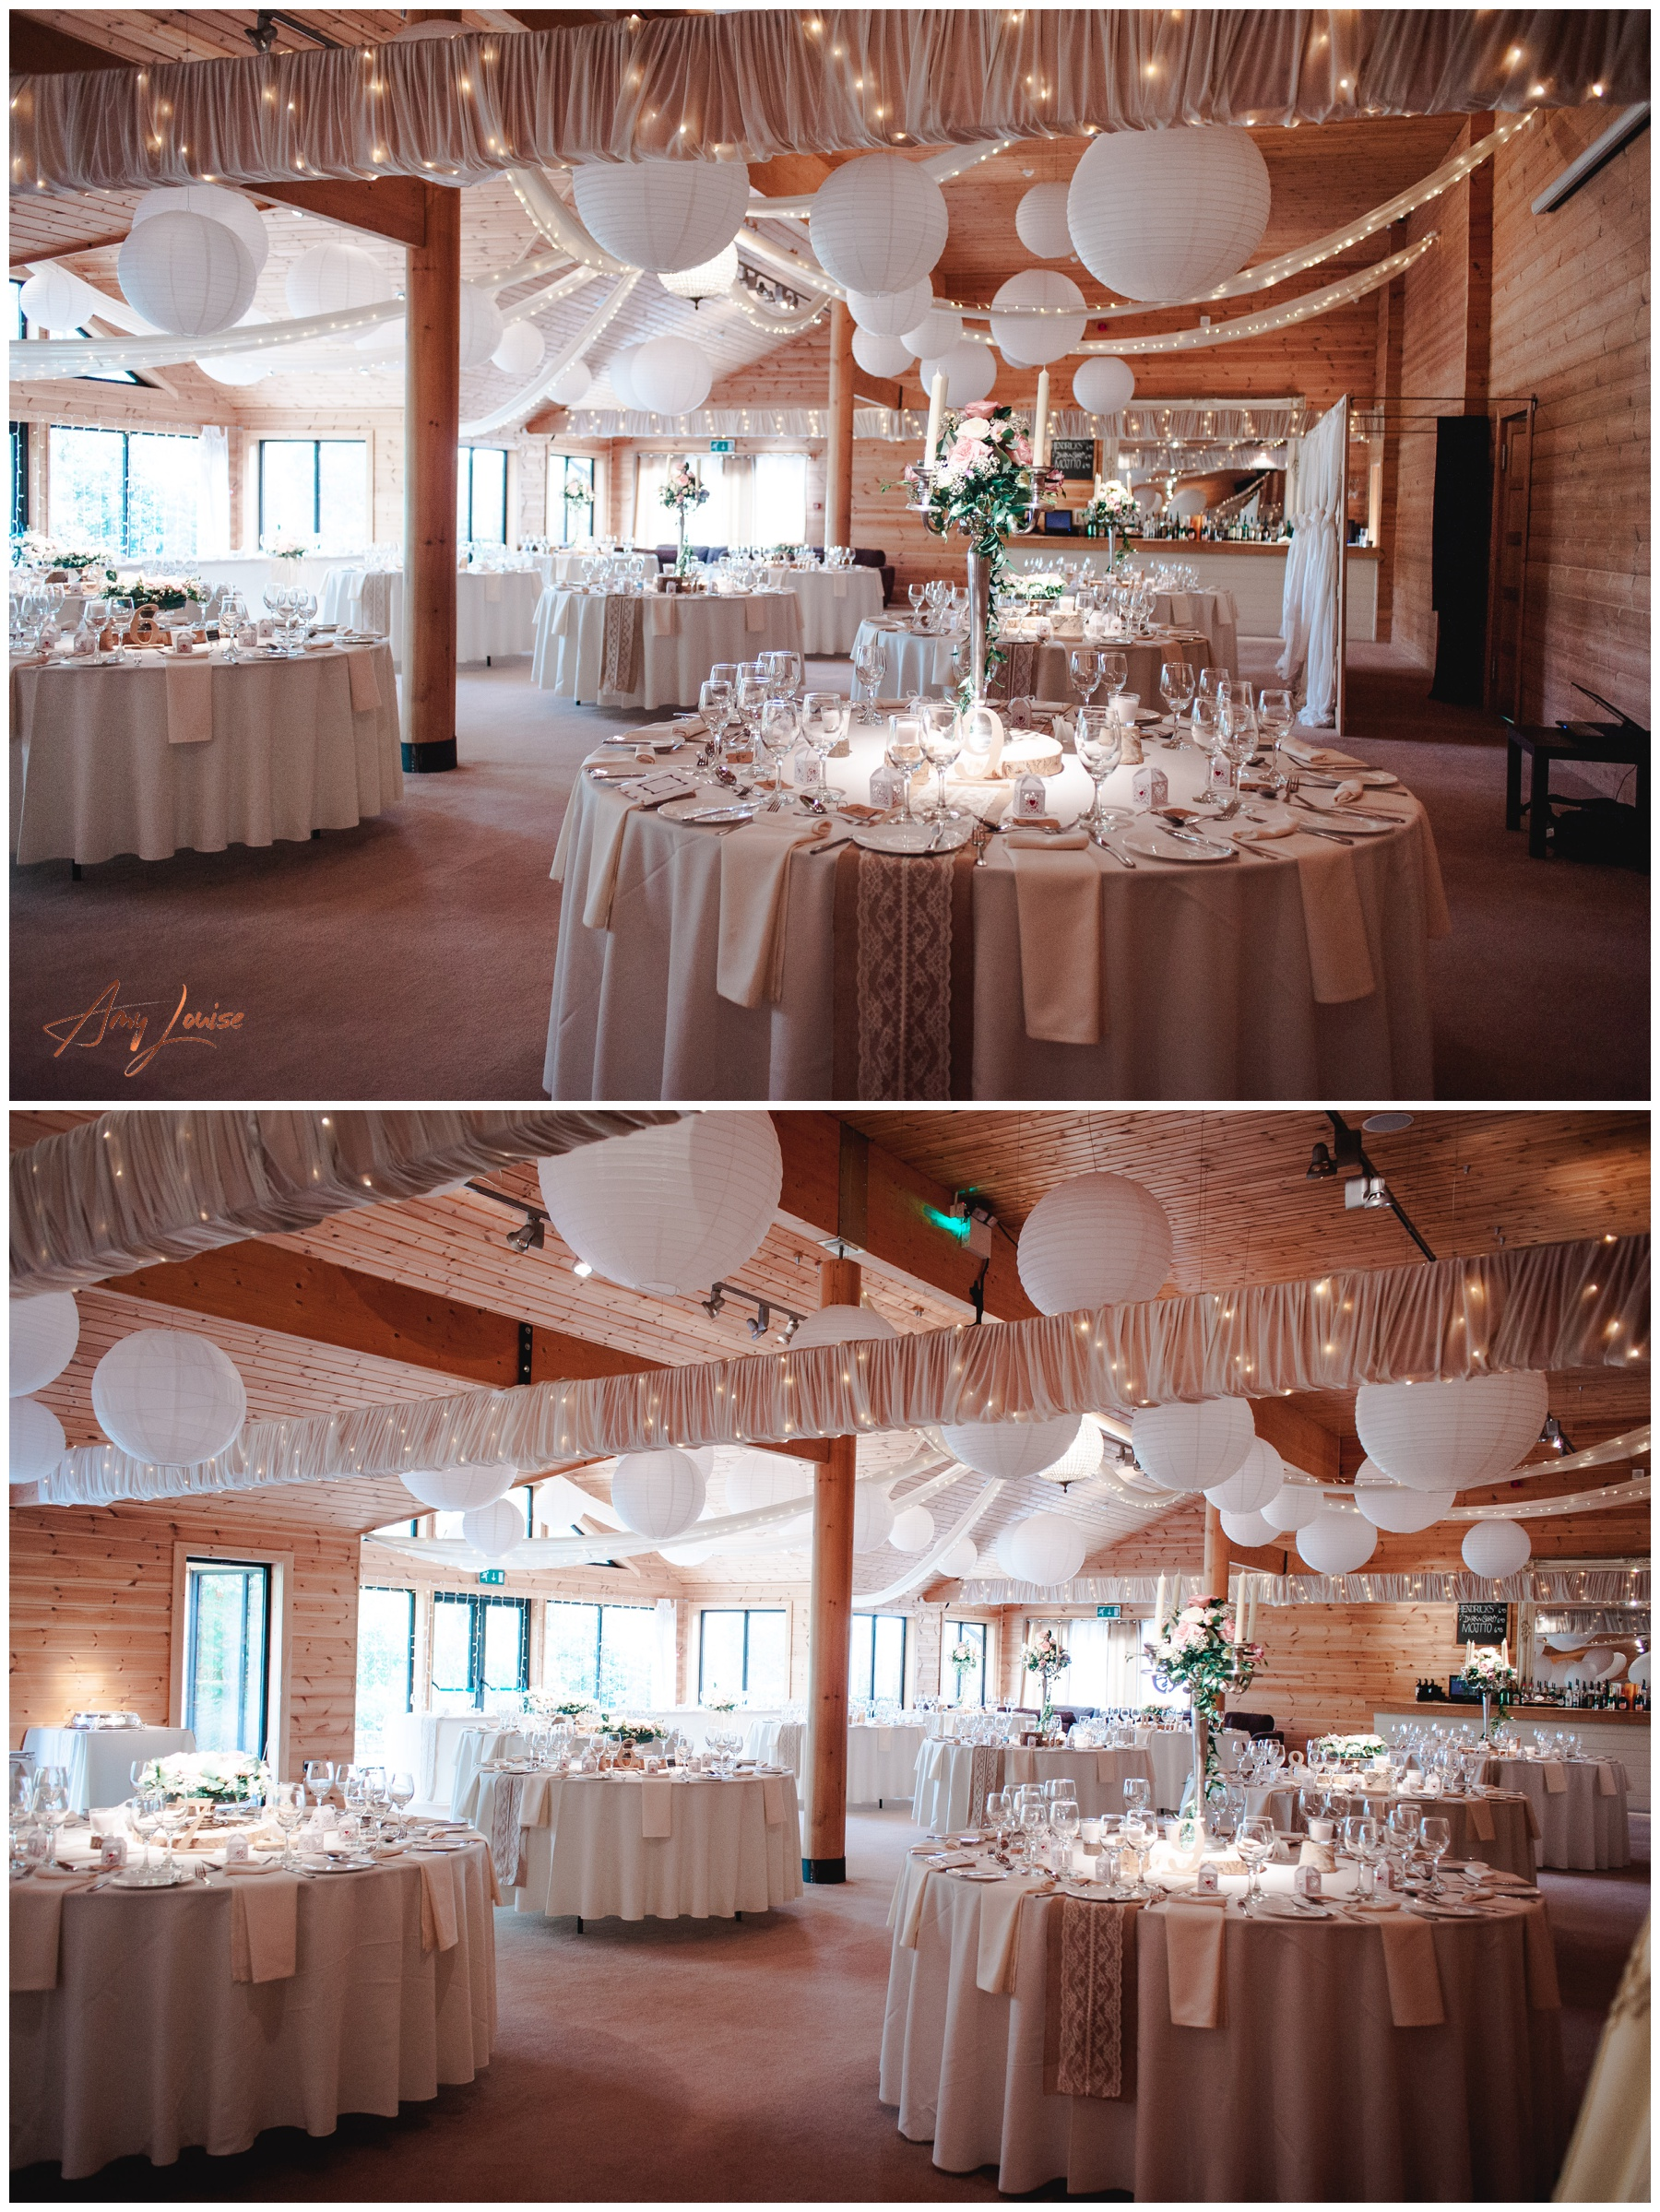 Styal Lodge Wedding Venue In Cheshire Amy Louise There Is Also A Room Set To The